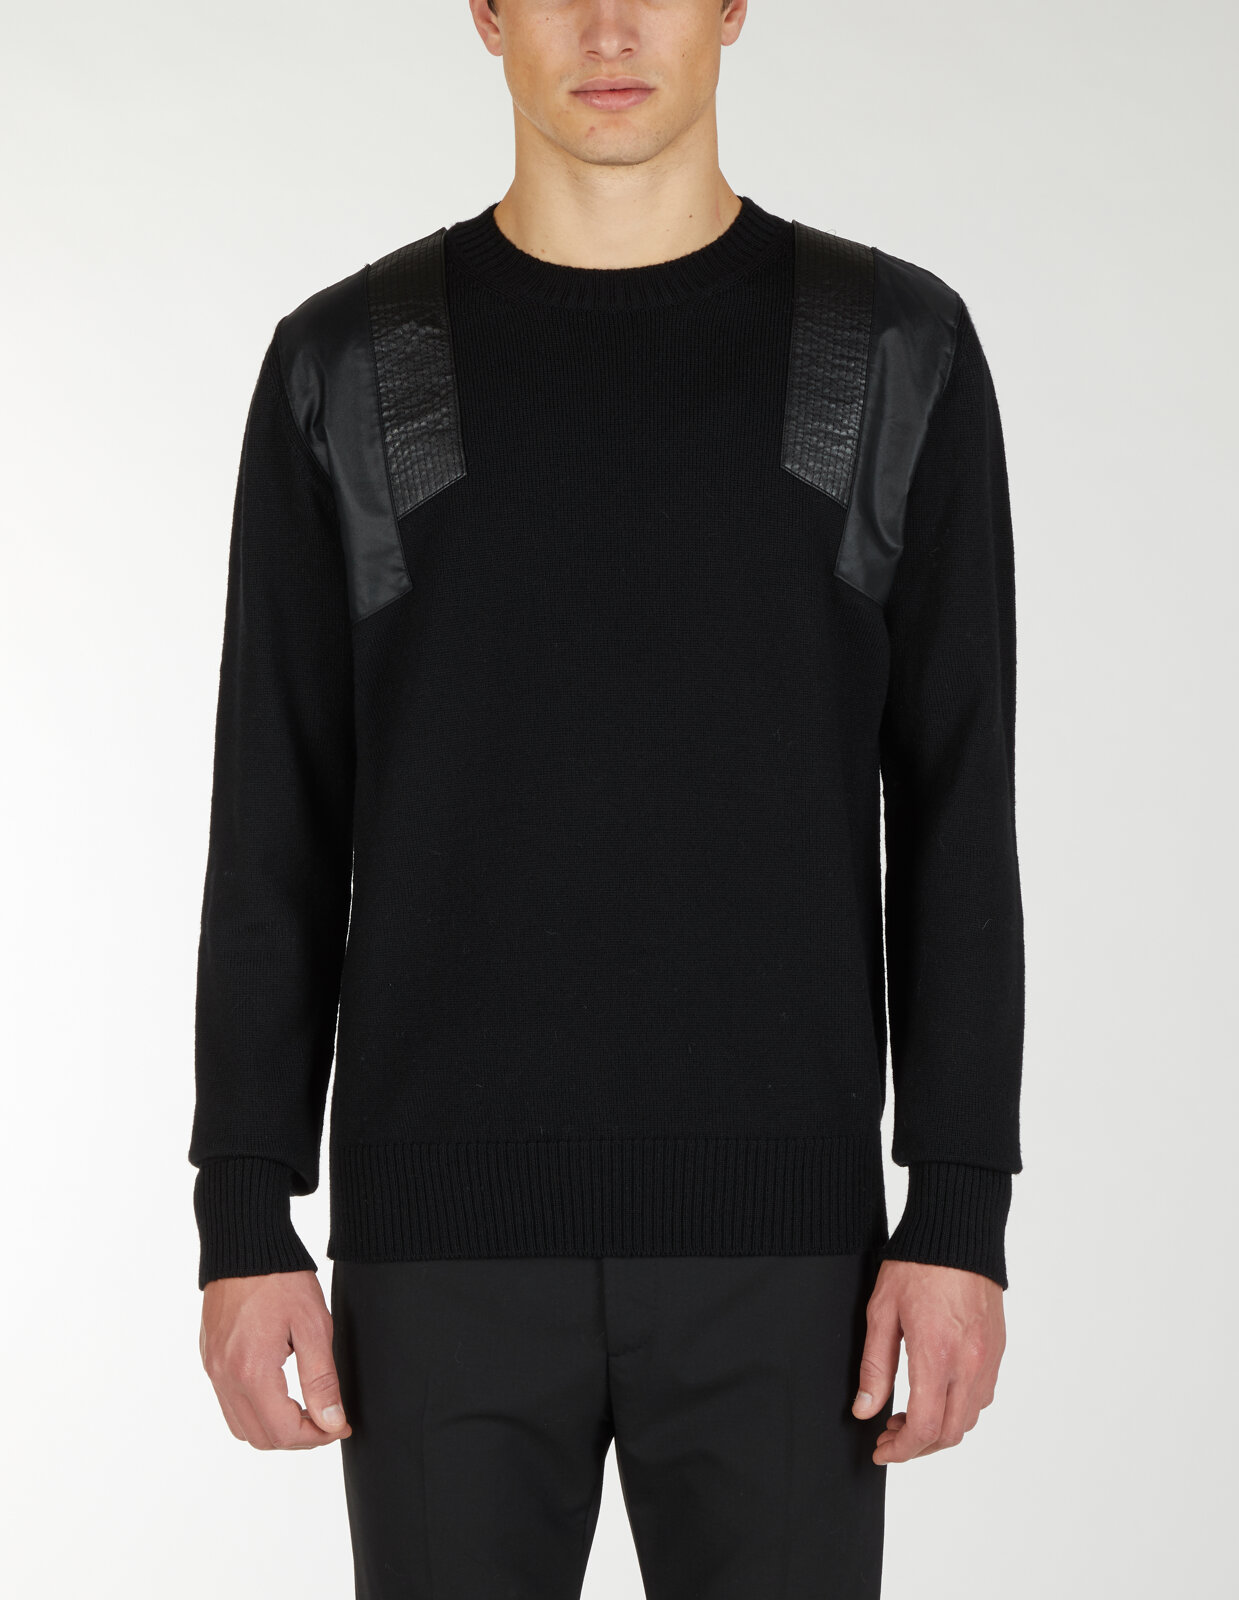 Round Neck Sweater With Shoulder Detail - Les Hommes